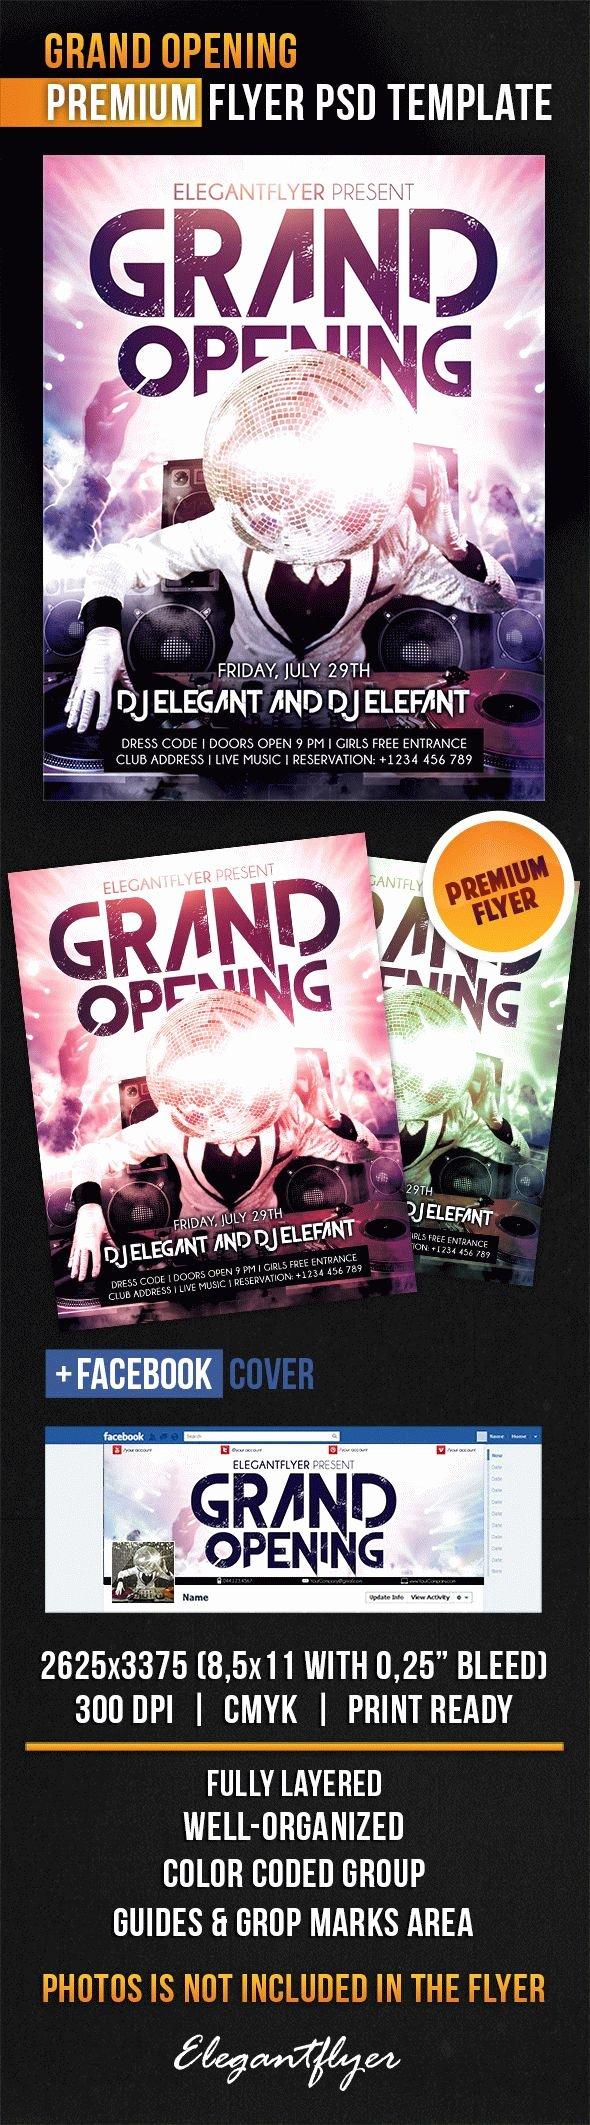 Grand Opening Flyer Template Luxury Dj for Grand Opening Flyer Template – by Elegantflyer